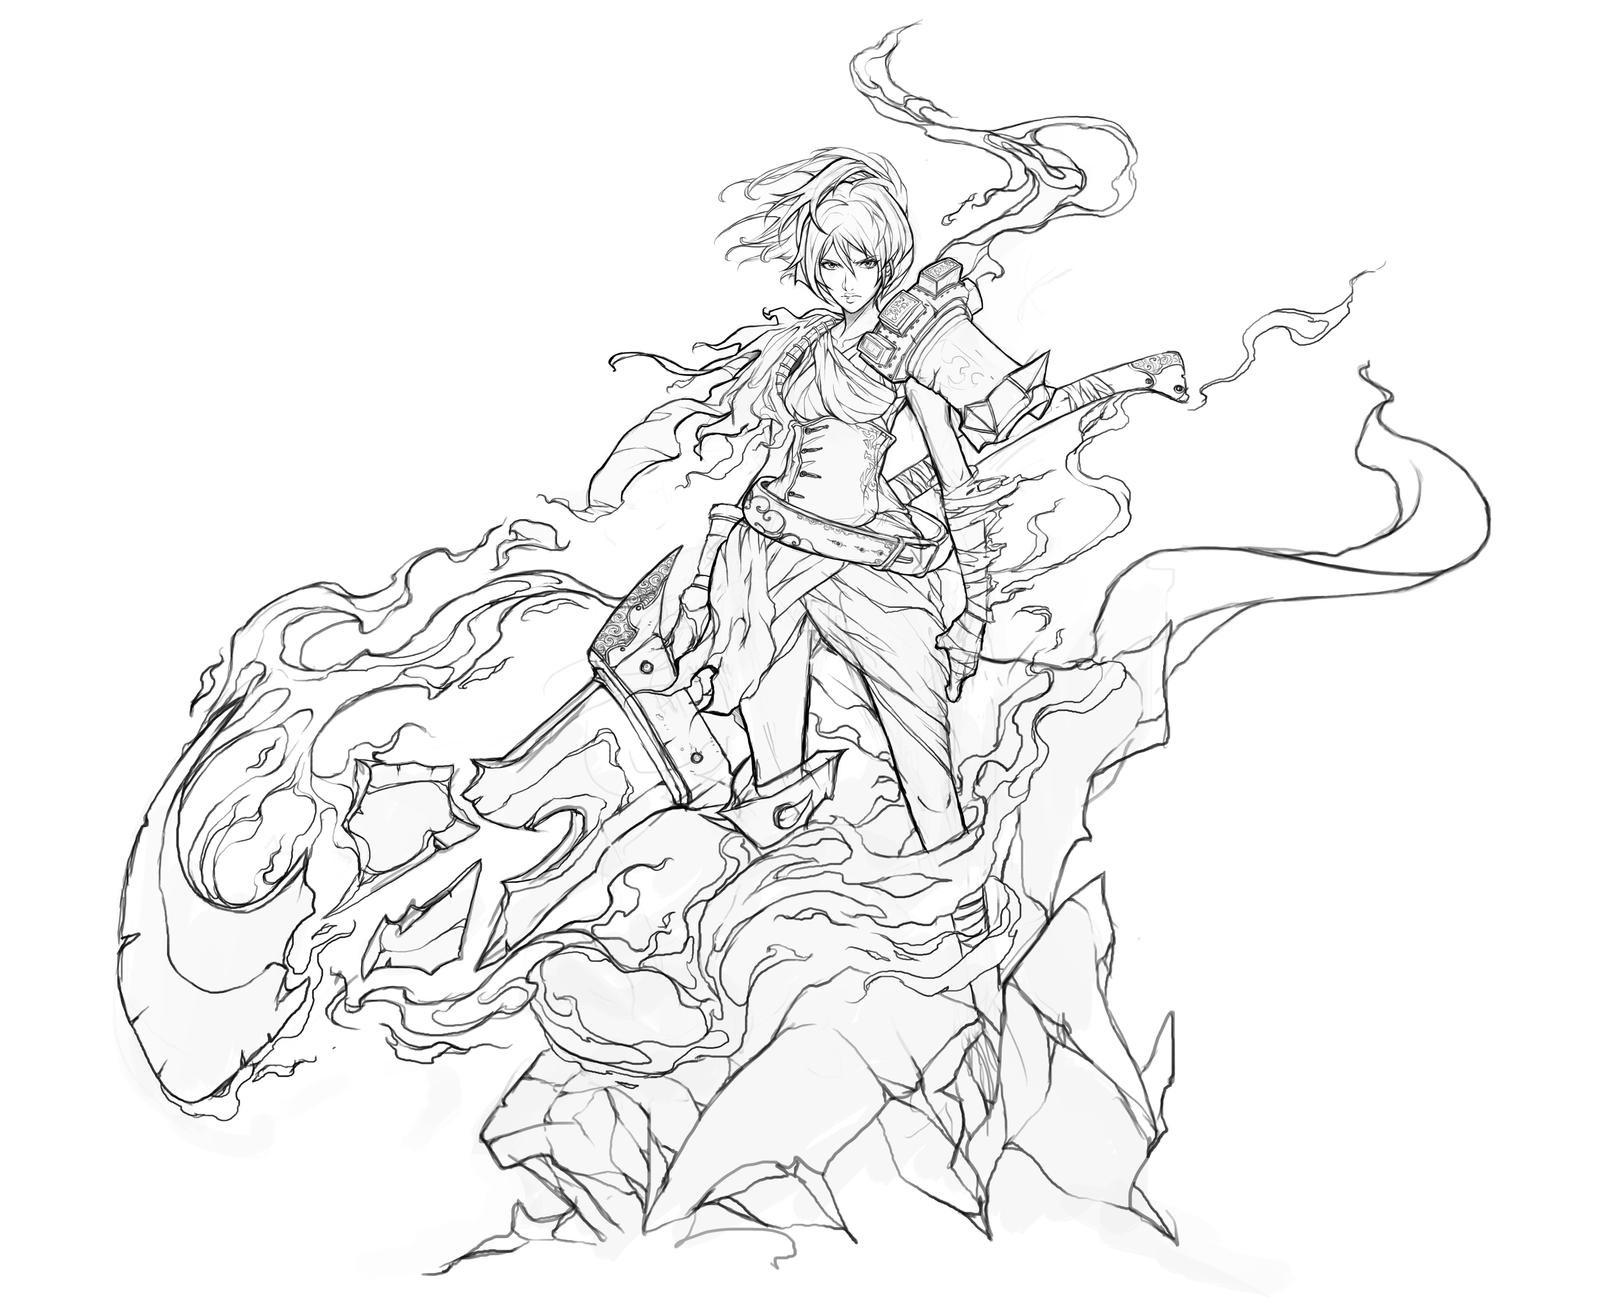 D Line Drawings You Tube : Riven stream lineart by muju on deviantart